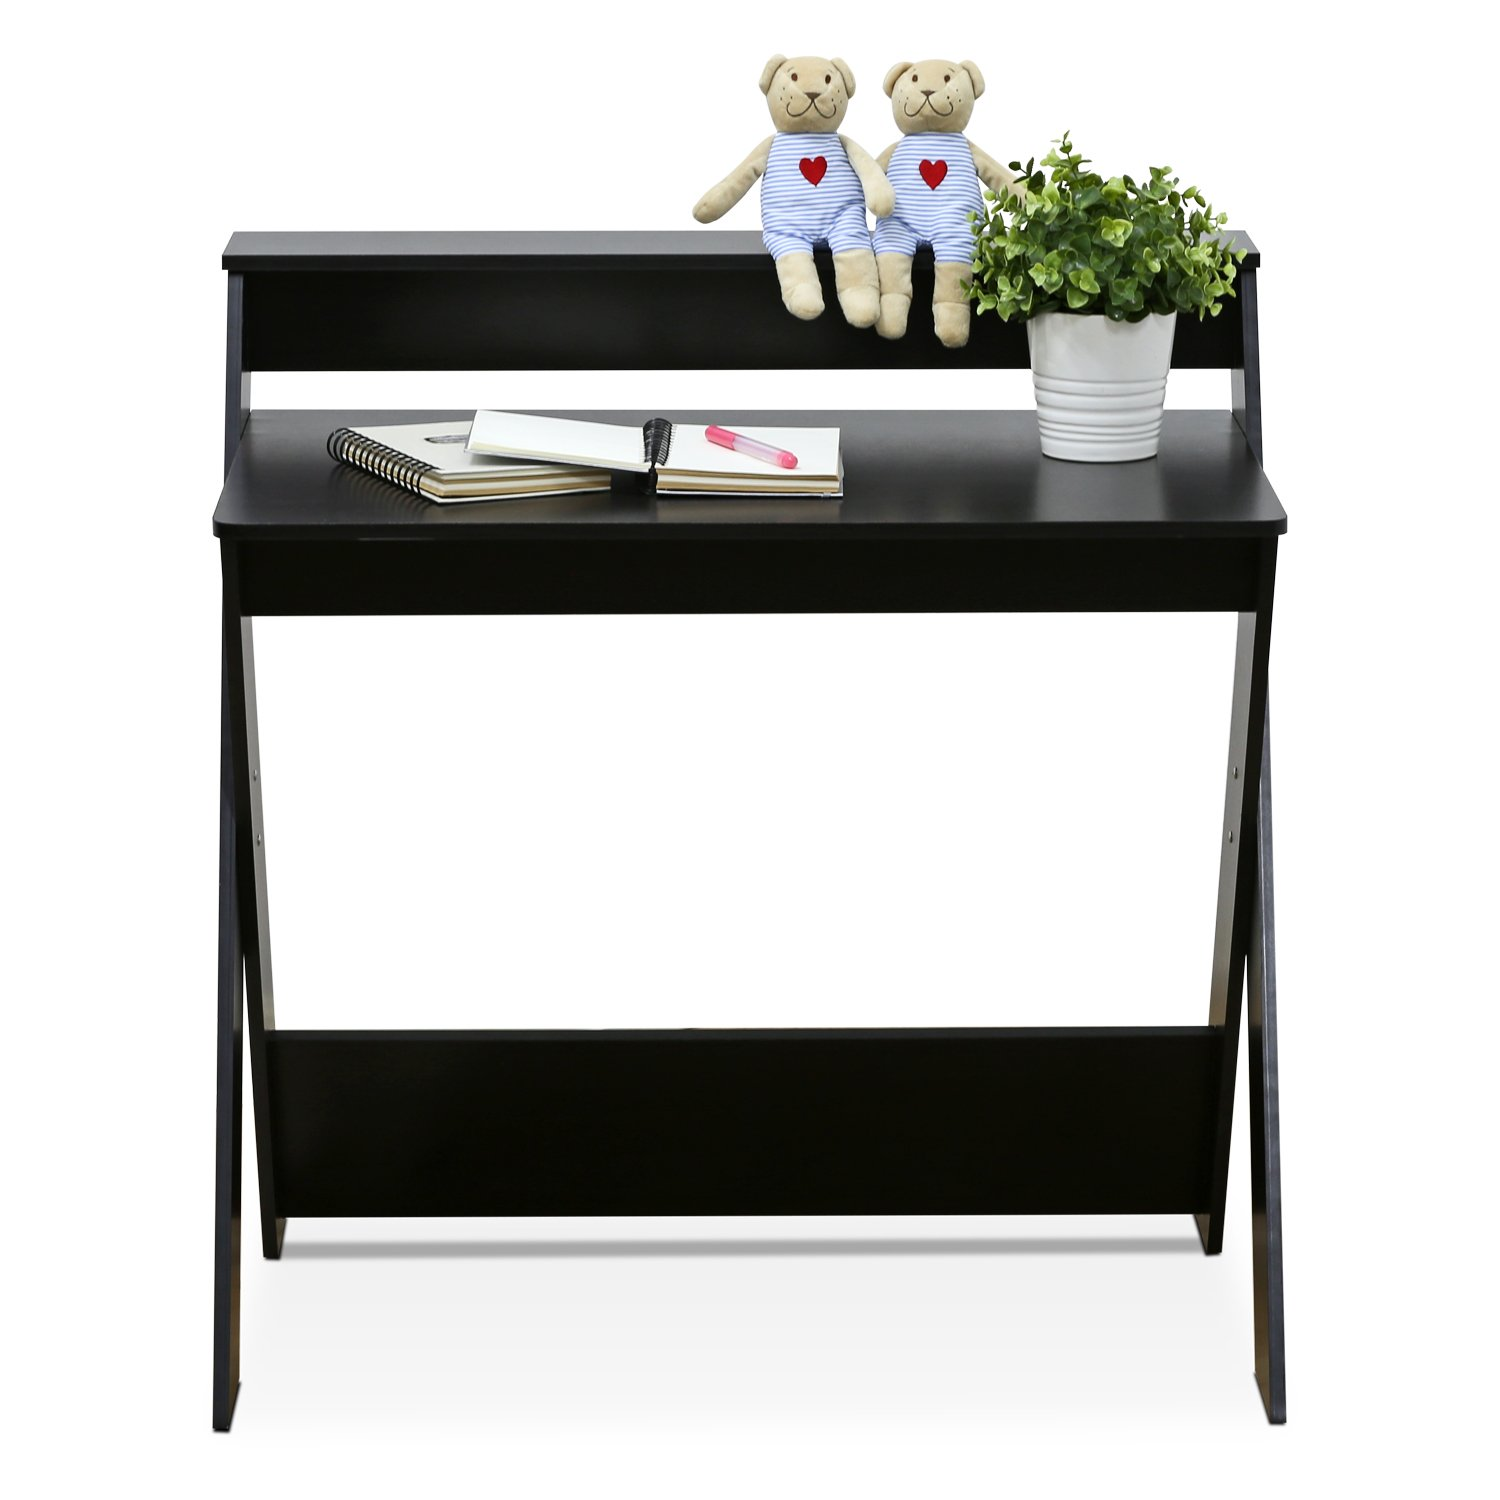 Furinno 16047EX Simplistic Criss-Crossed Home Office Study Desk by Furinno (Image #3)